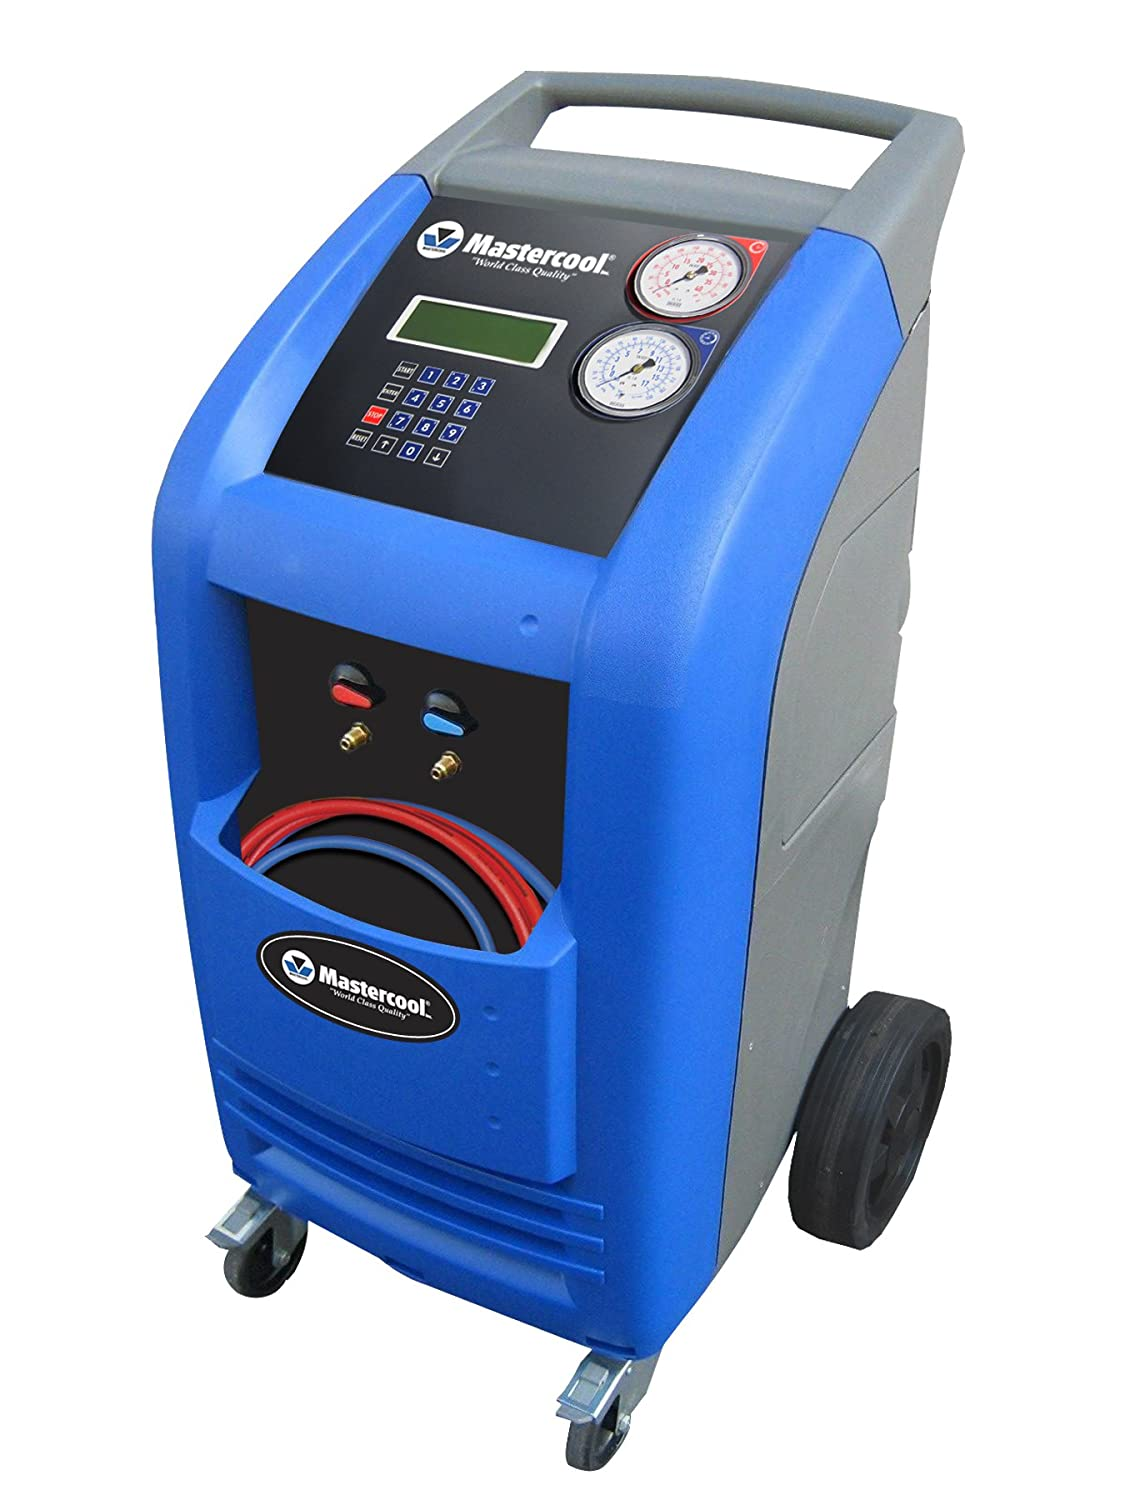 Mastercool (69788-A) Blue/Gray Automatic Recover/Recycle/Recharge Machine